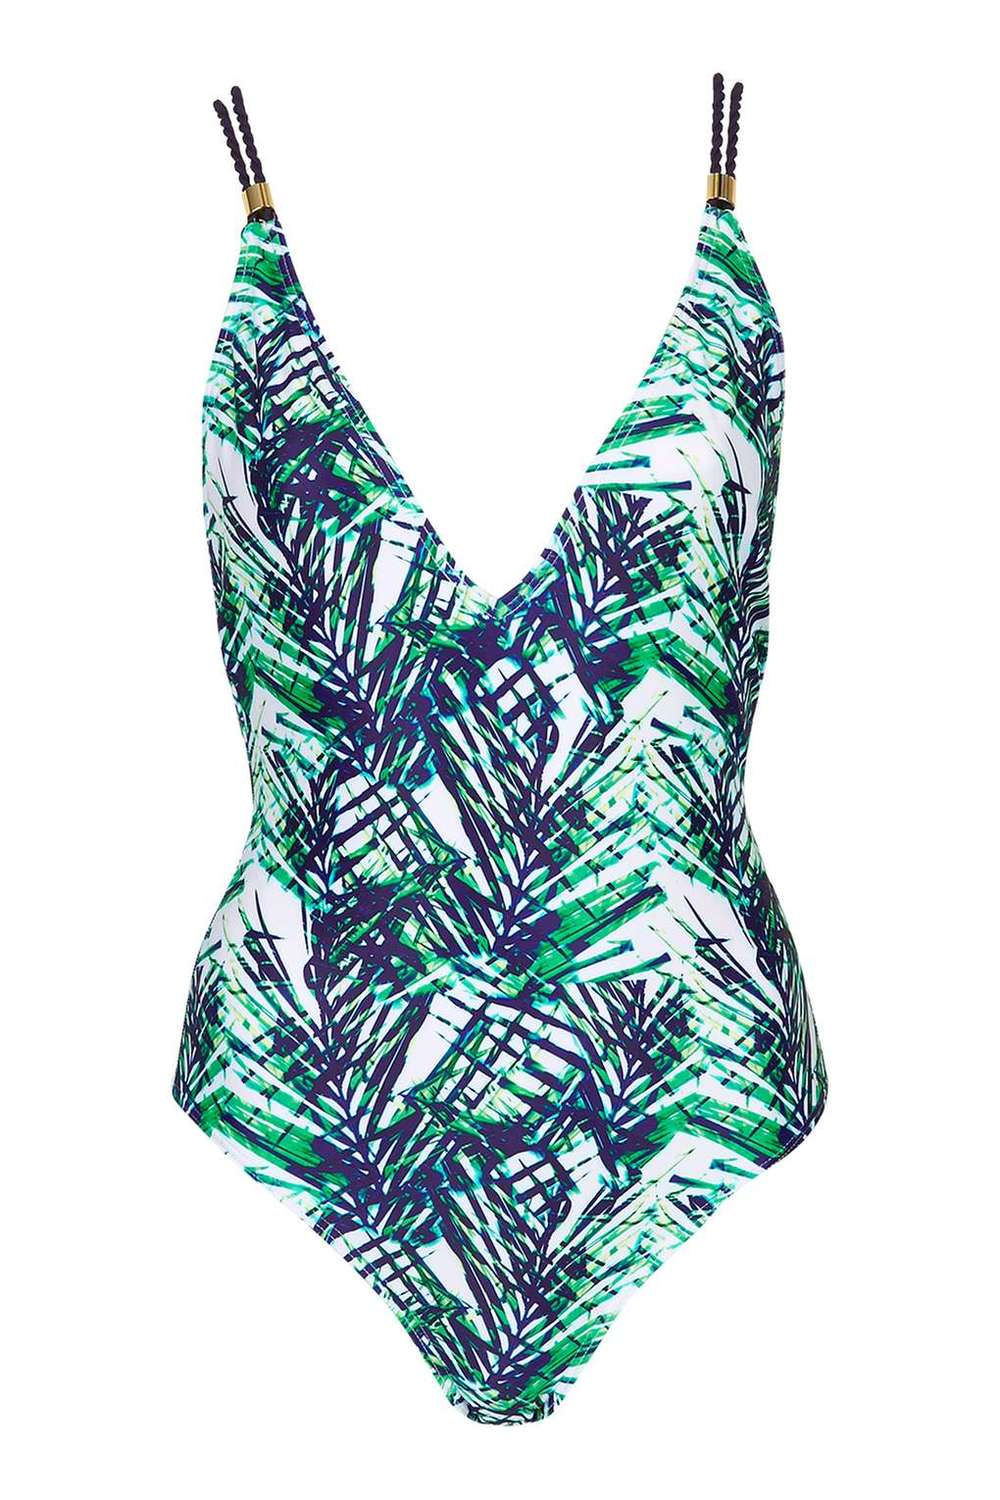 TOPSHOP PALM PRINT TWIST STRAP SWIMSUIT - £34